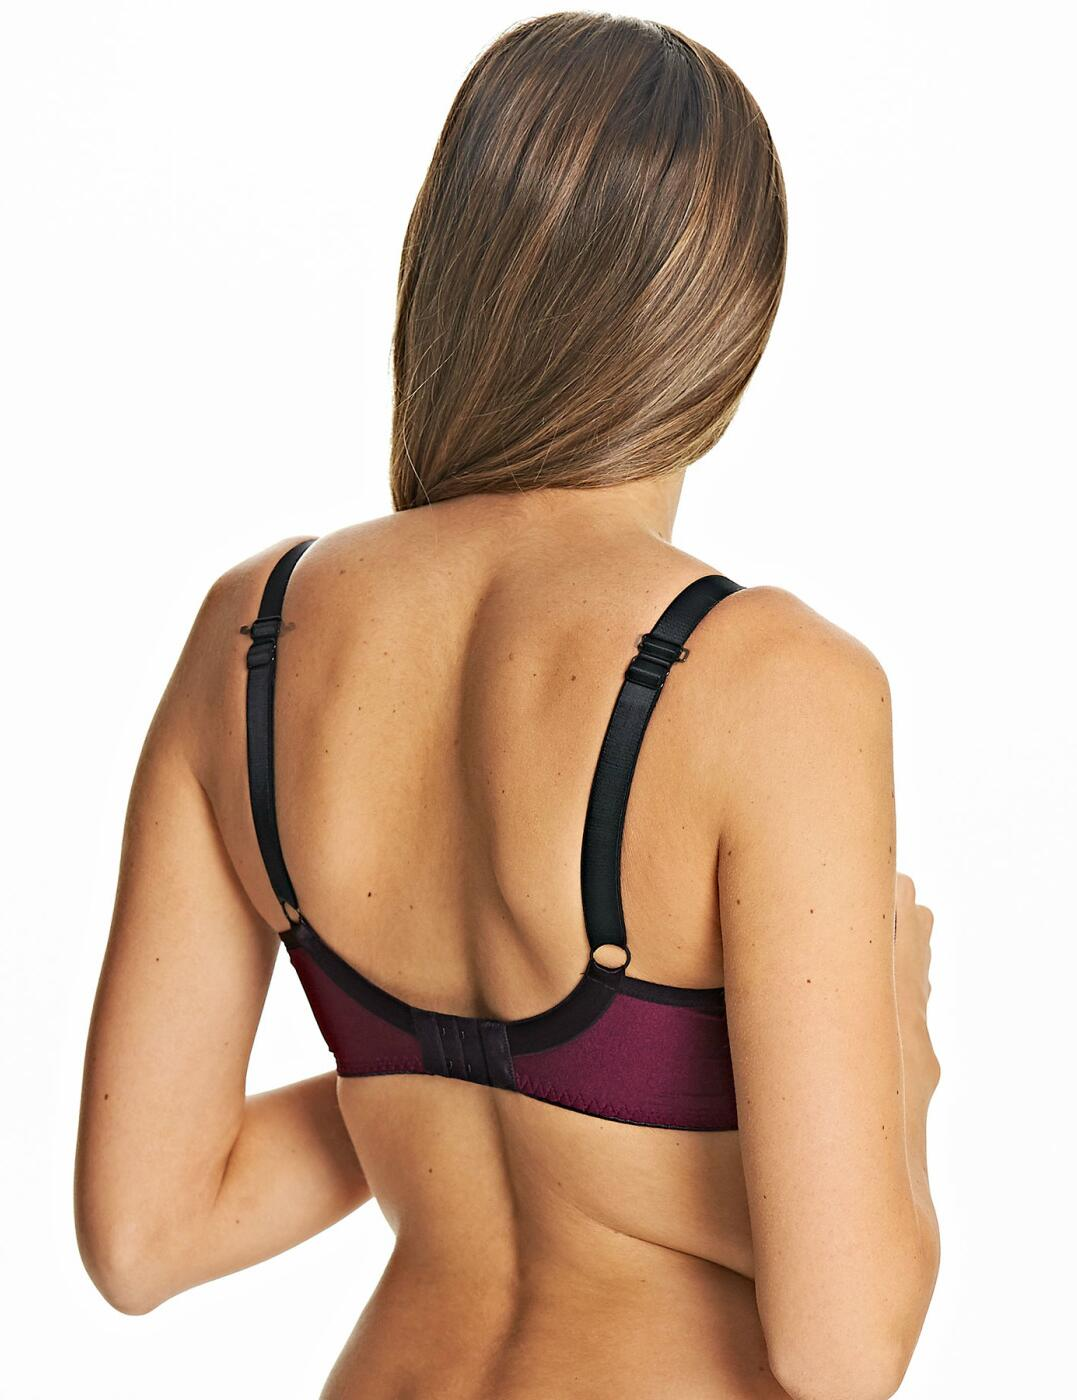 Freya-Deco-Amore-Bra-1891-Underwired-Moulded-Plunge-New-Womens-Lingerie thumbnail 9